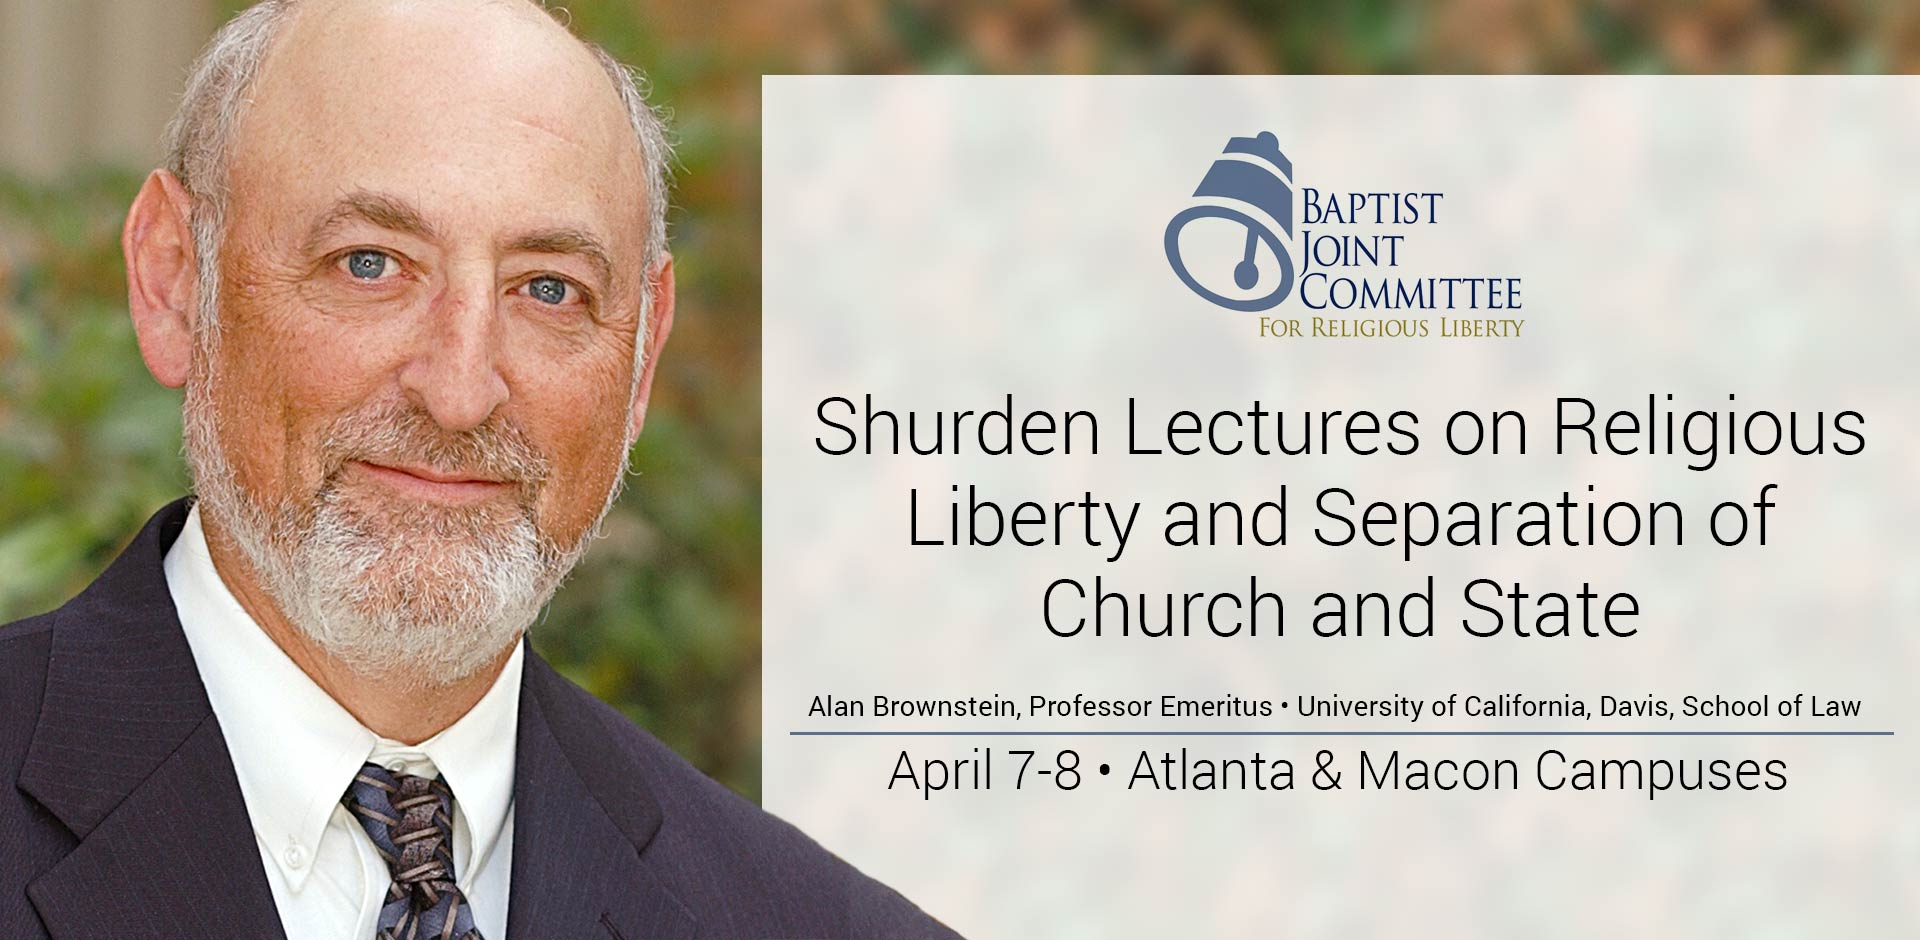 Mercer to Host Shurden Lectures on Religious Liberty and Separation of Church and State April 7-8